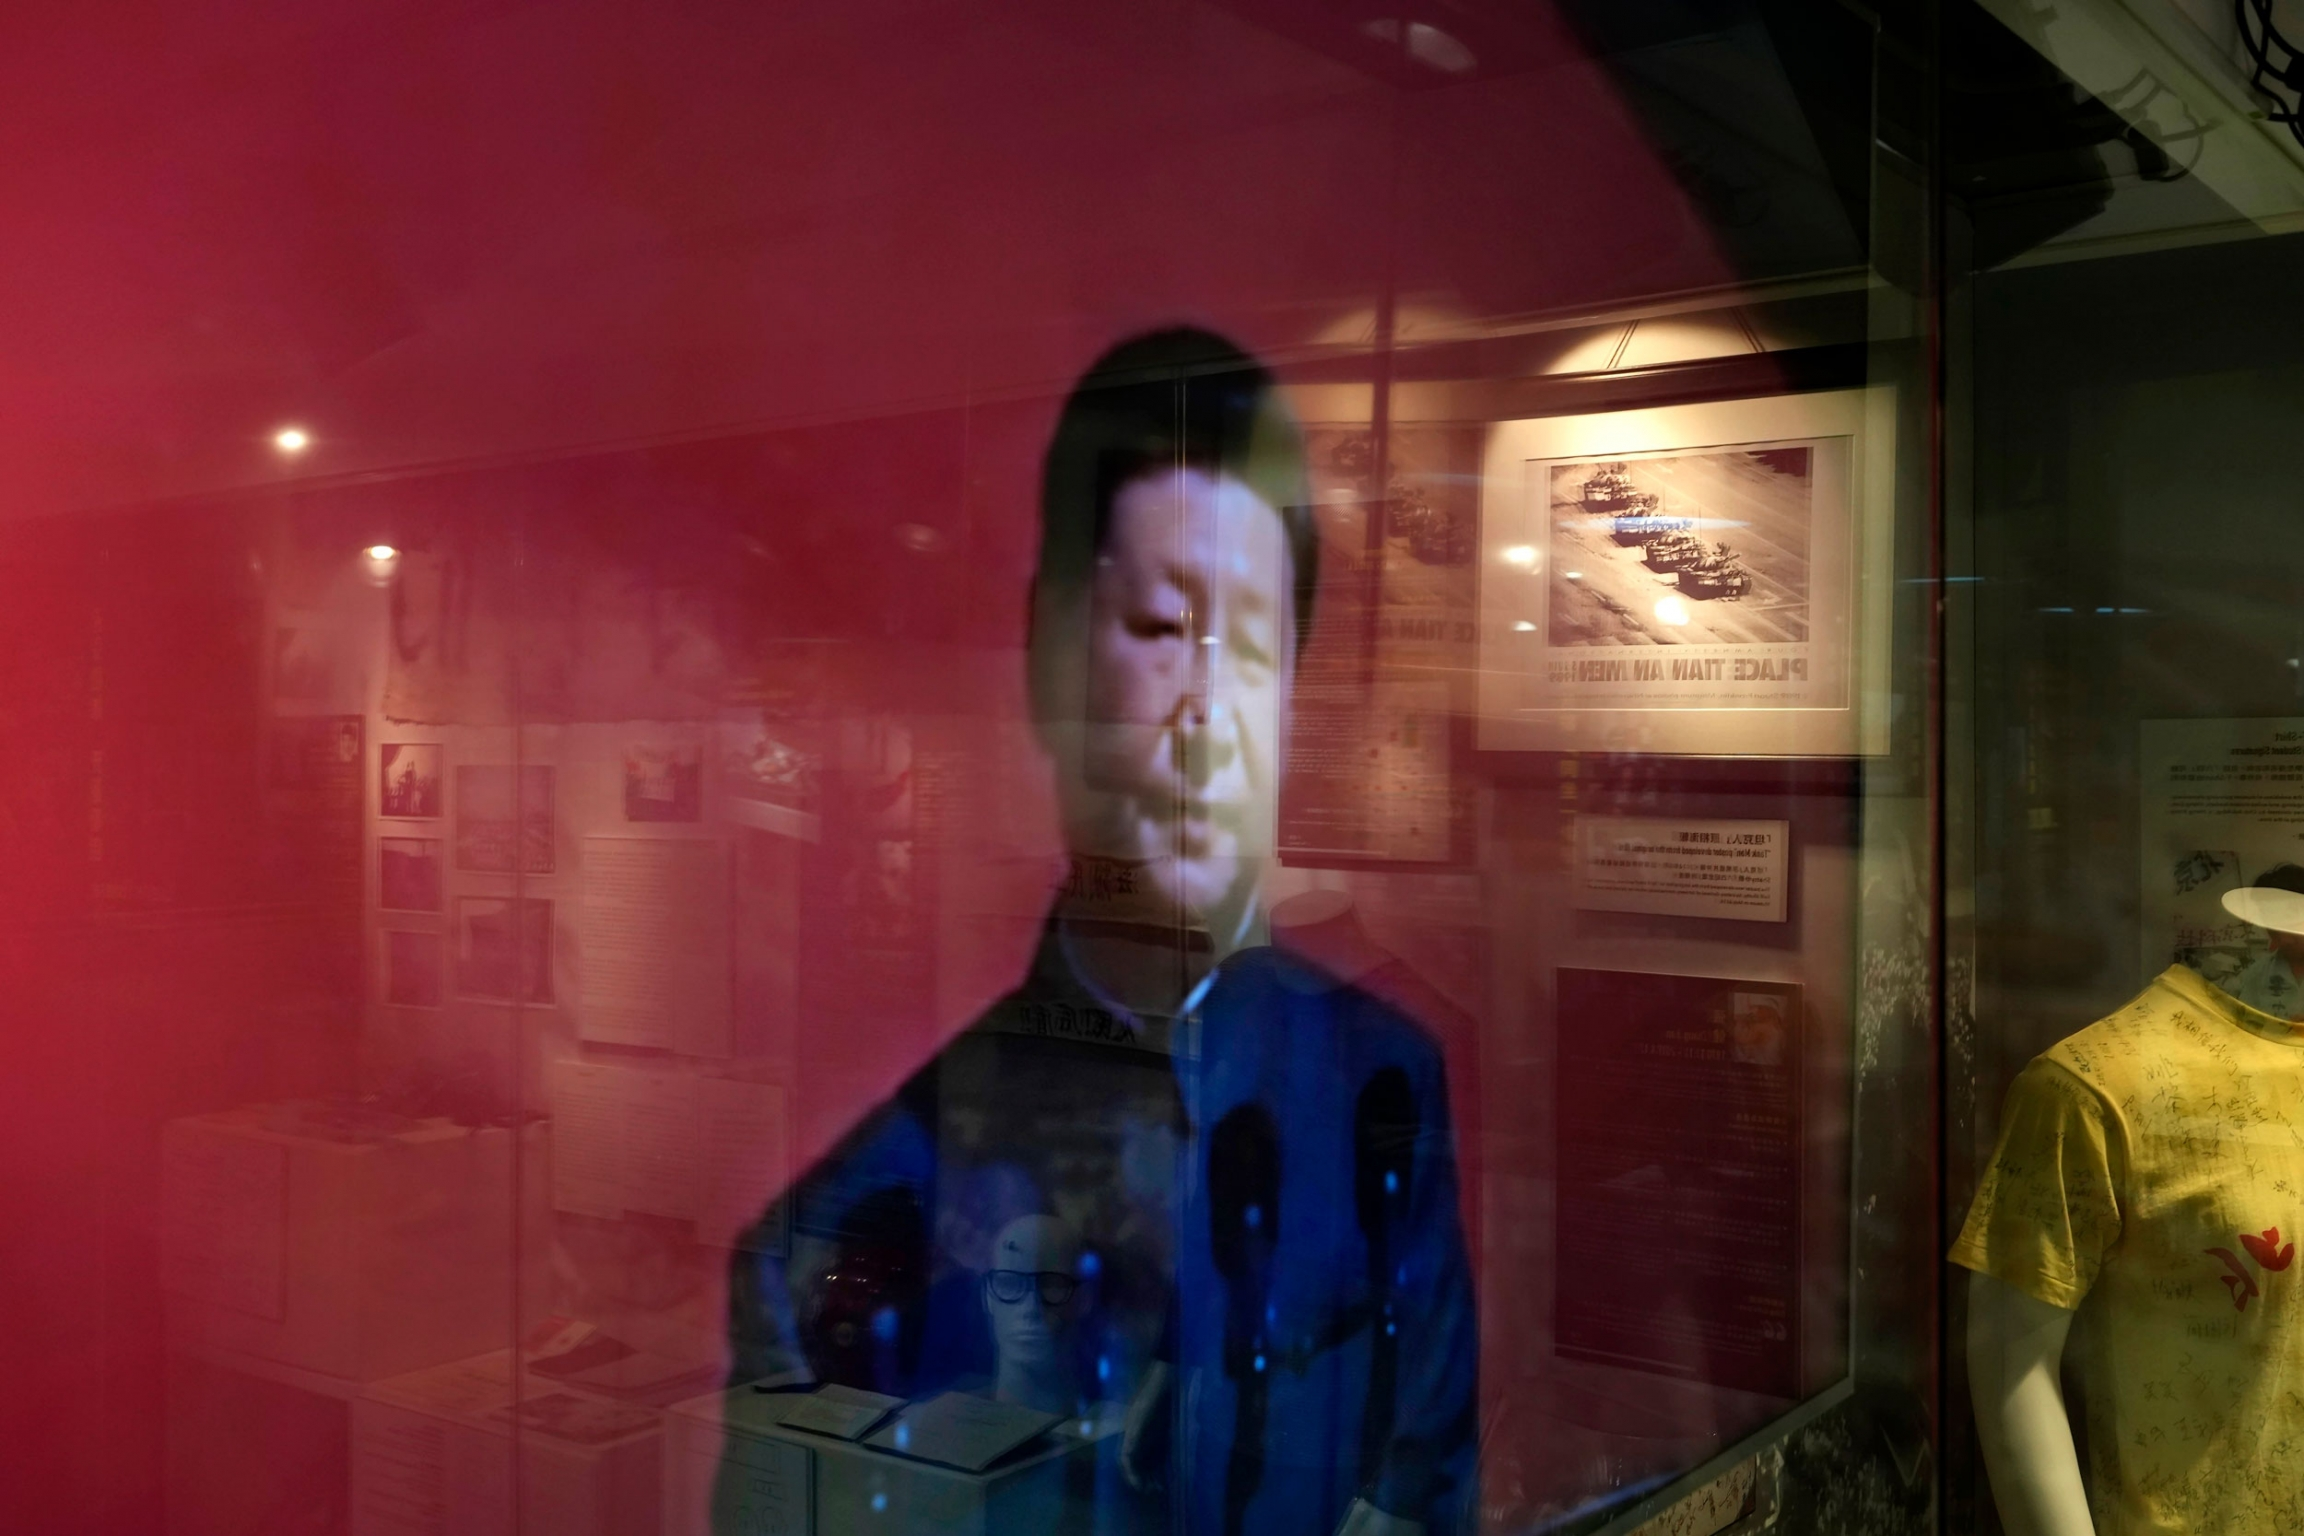 An image of China President Xi Jinping depicted on a red background is shown is shown through glass that's reflecting other Tiananmen Square artifacts.